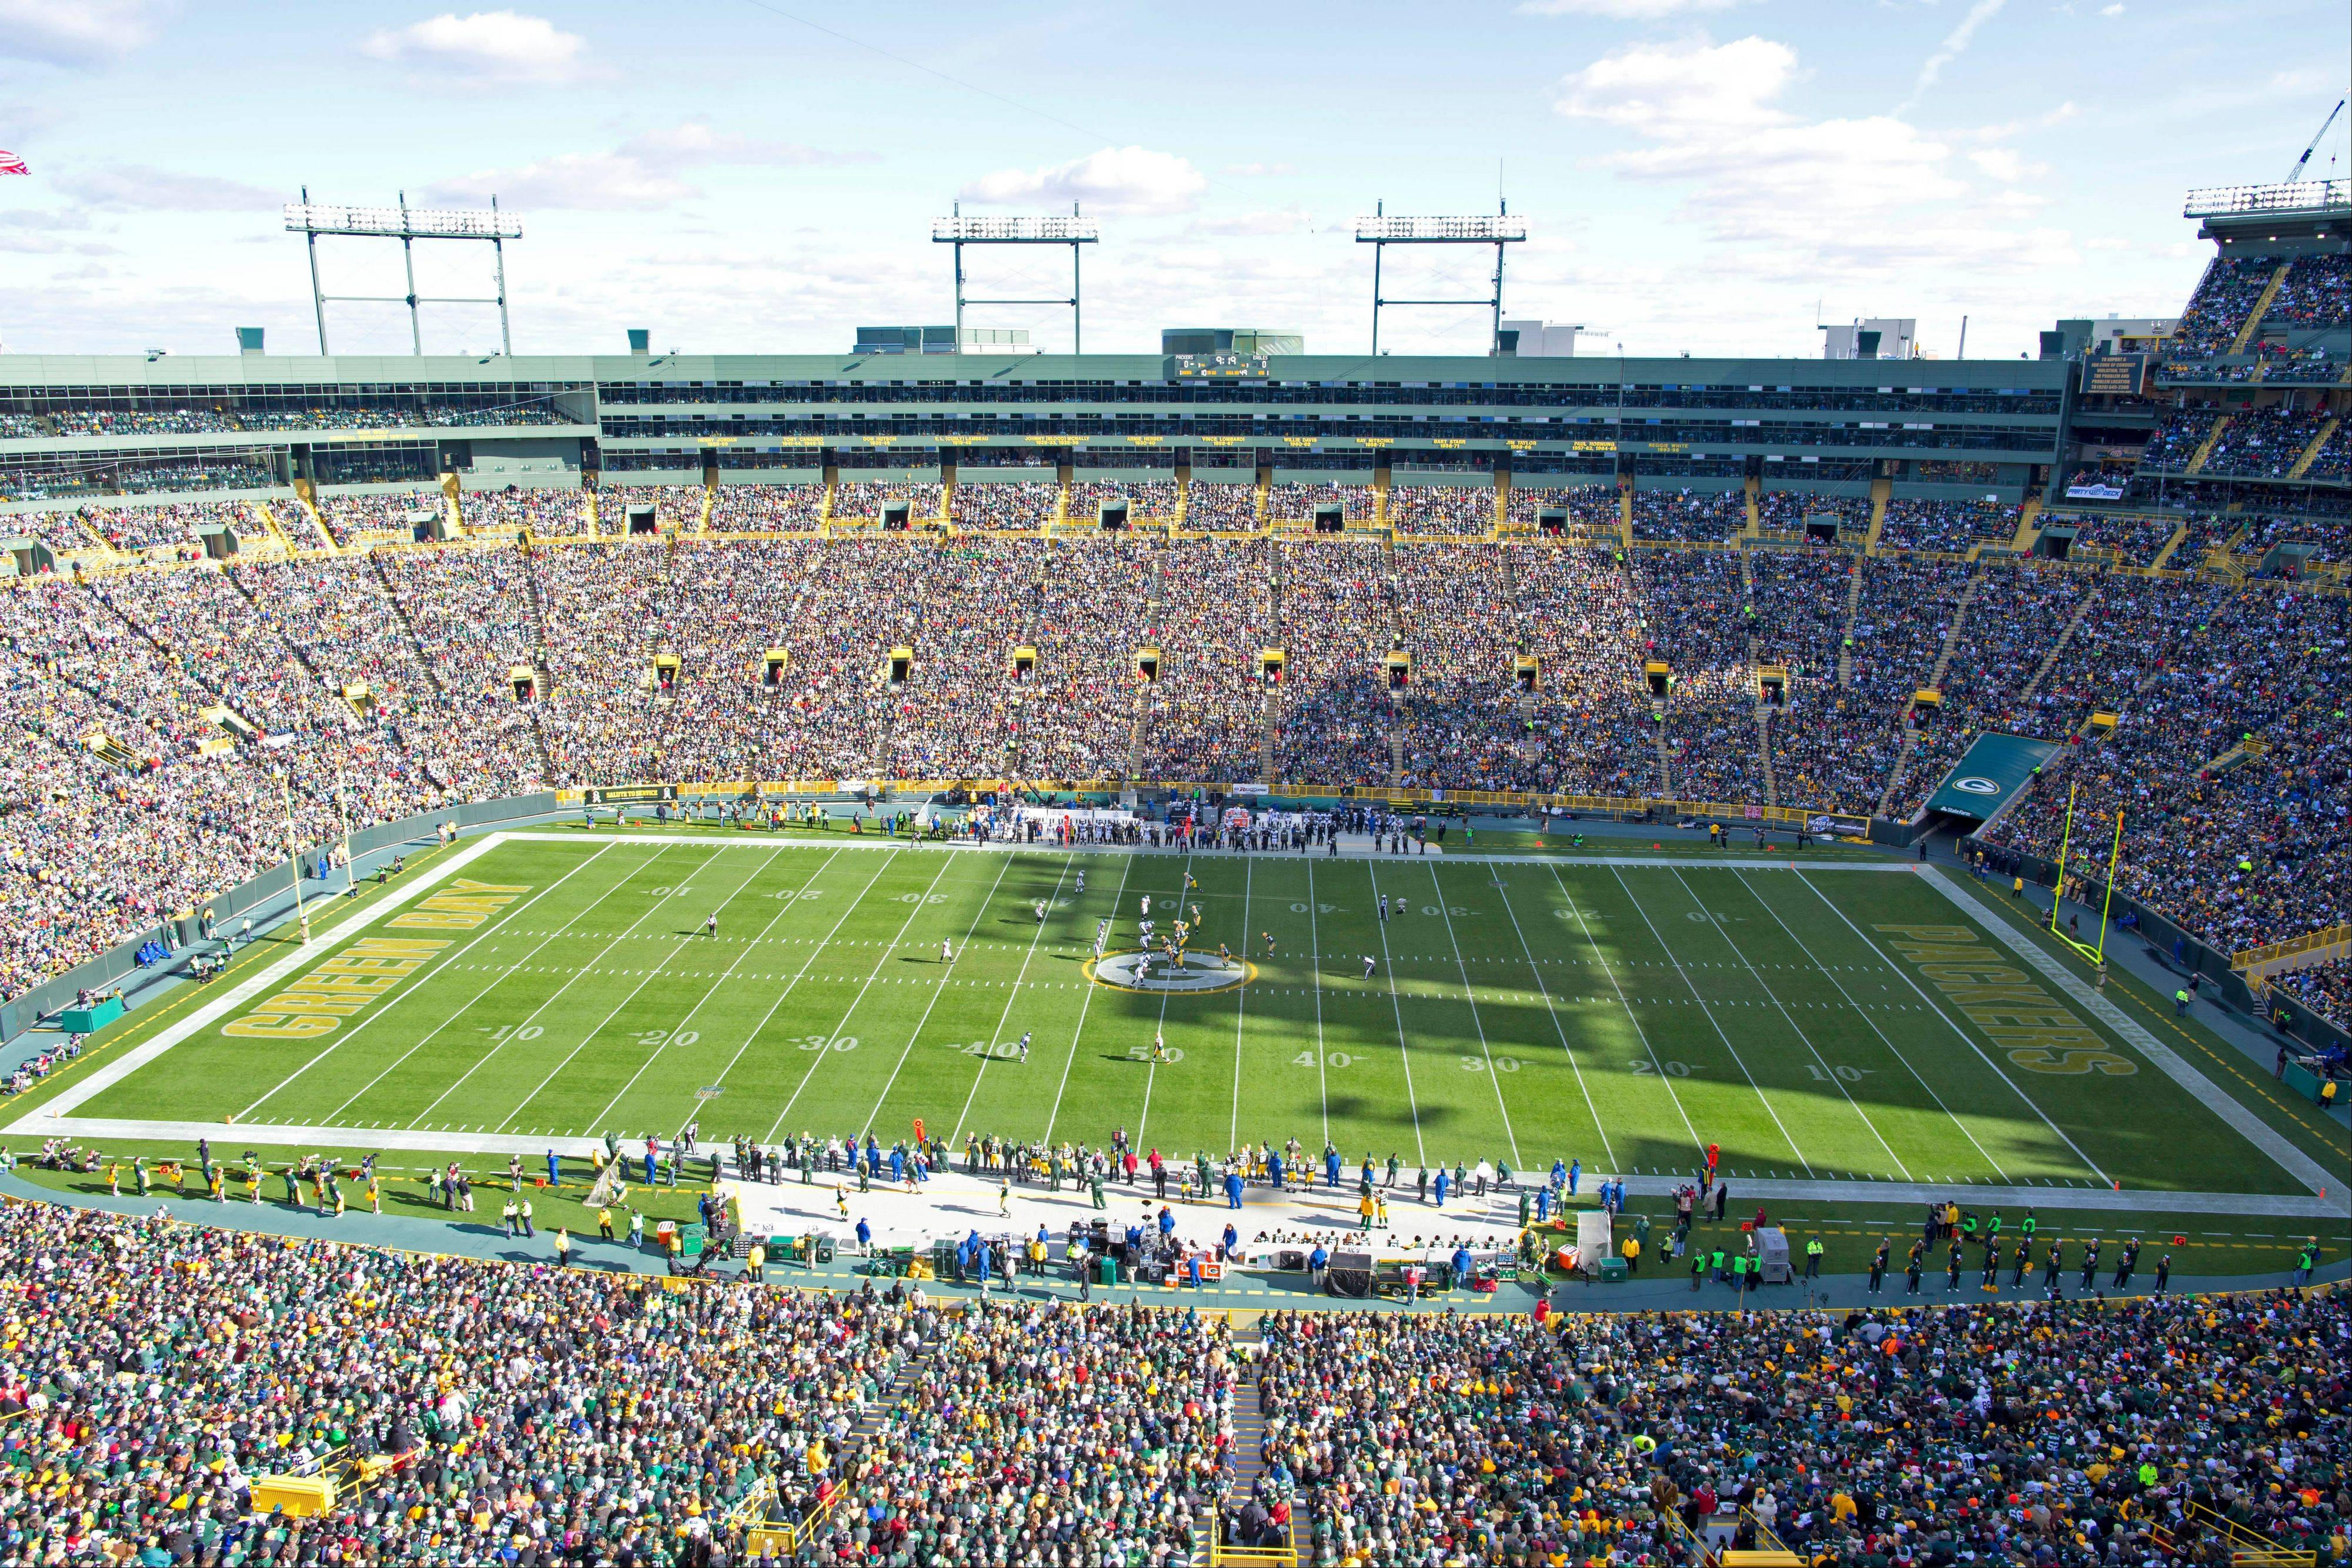 A tour of Lambeau Field offers a peek behind the curtain where so much of professional football's history has been written. The tour takes visitors to the atrium and luxury boxes, but the locker room and field are off limits.